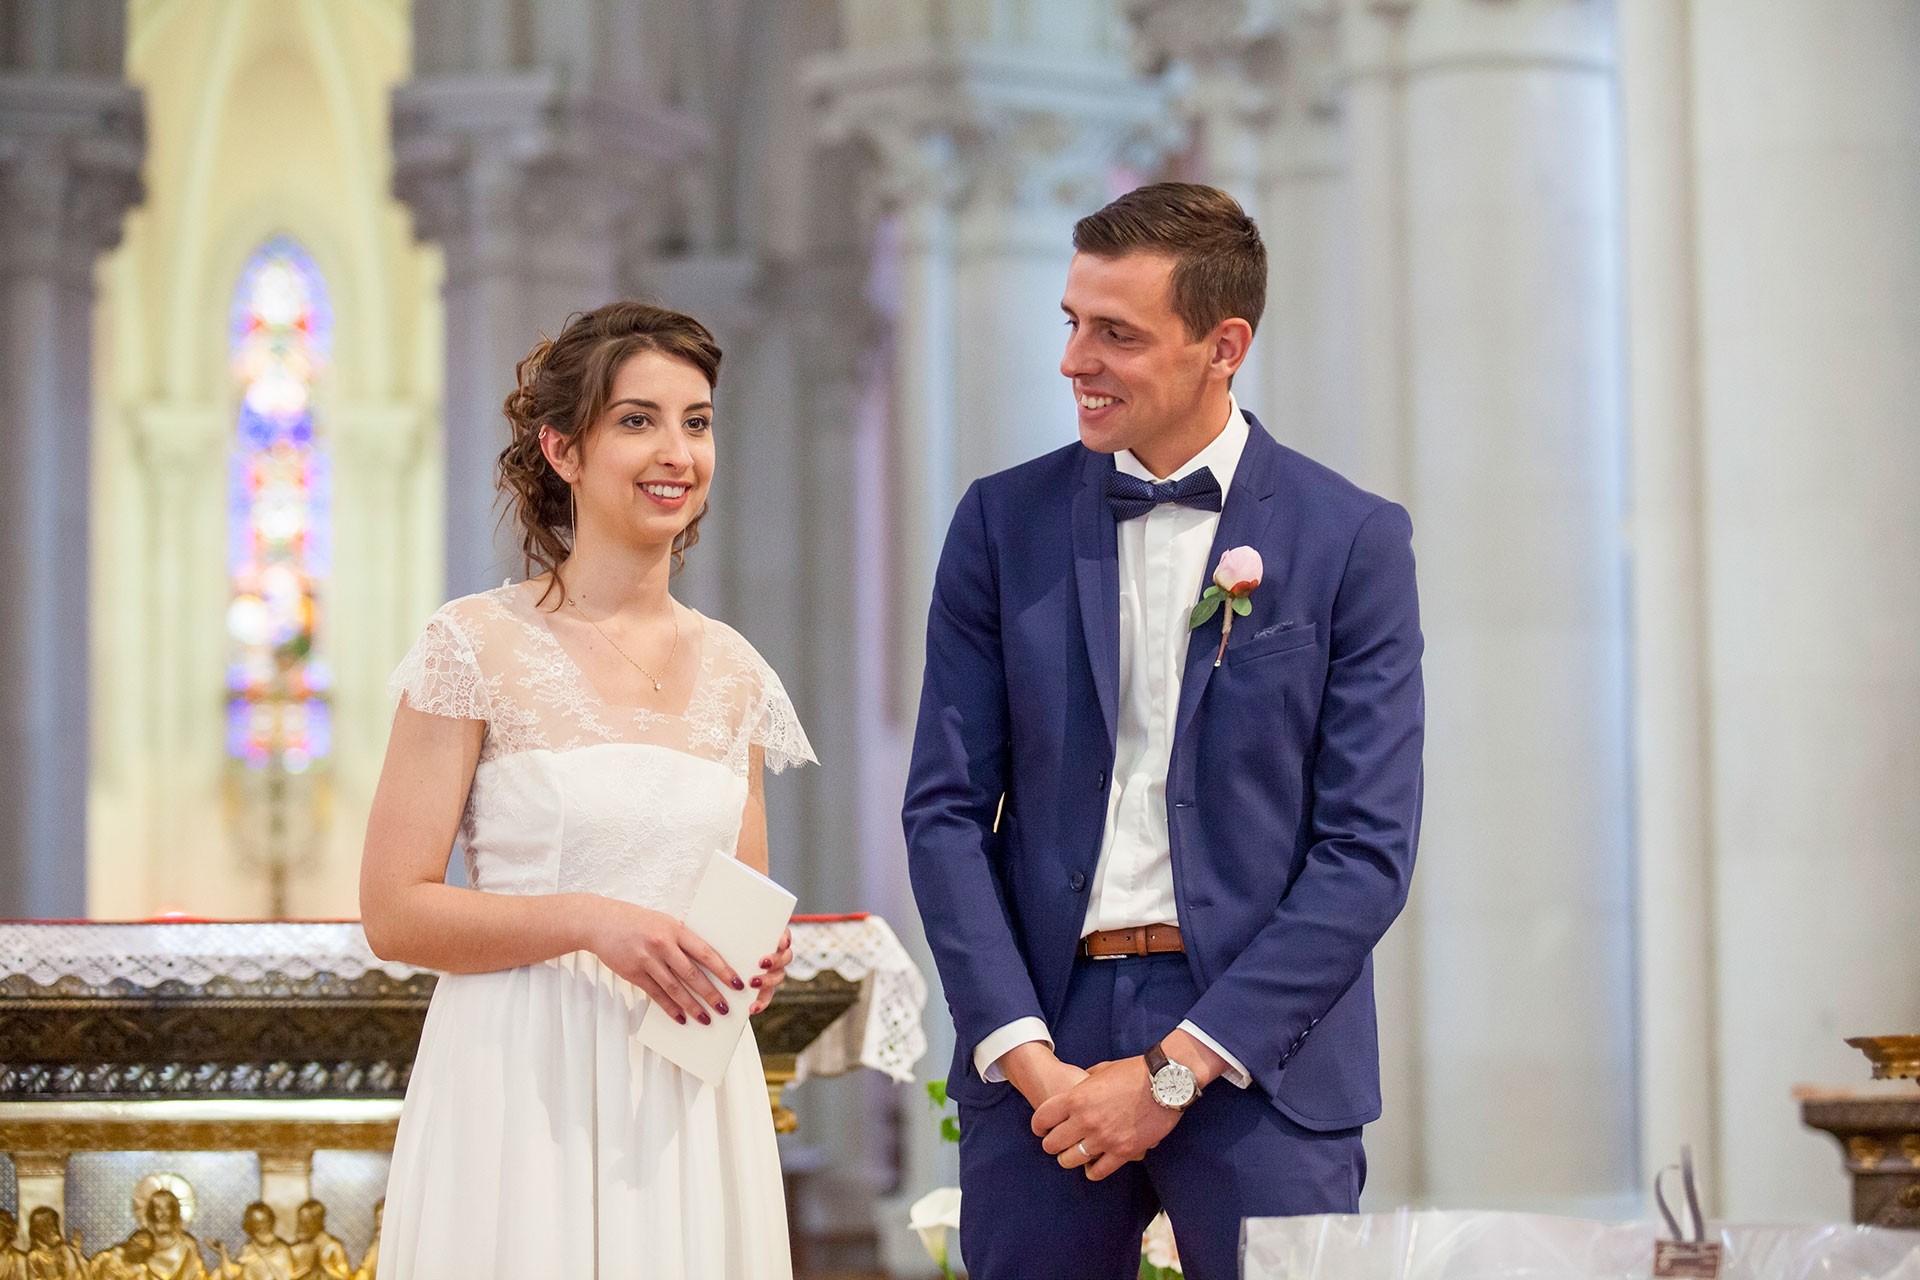 particuliers-evenements-mariages-oui-clementine&alexandre-38